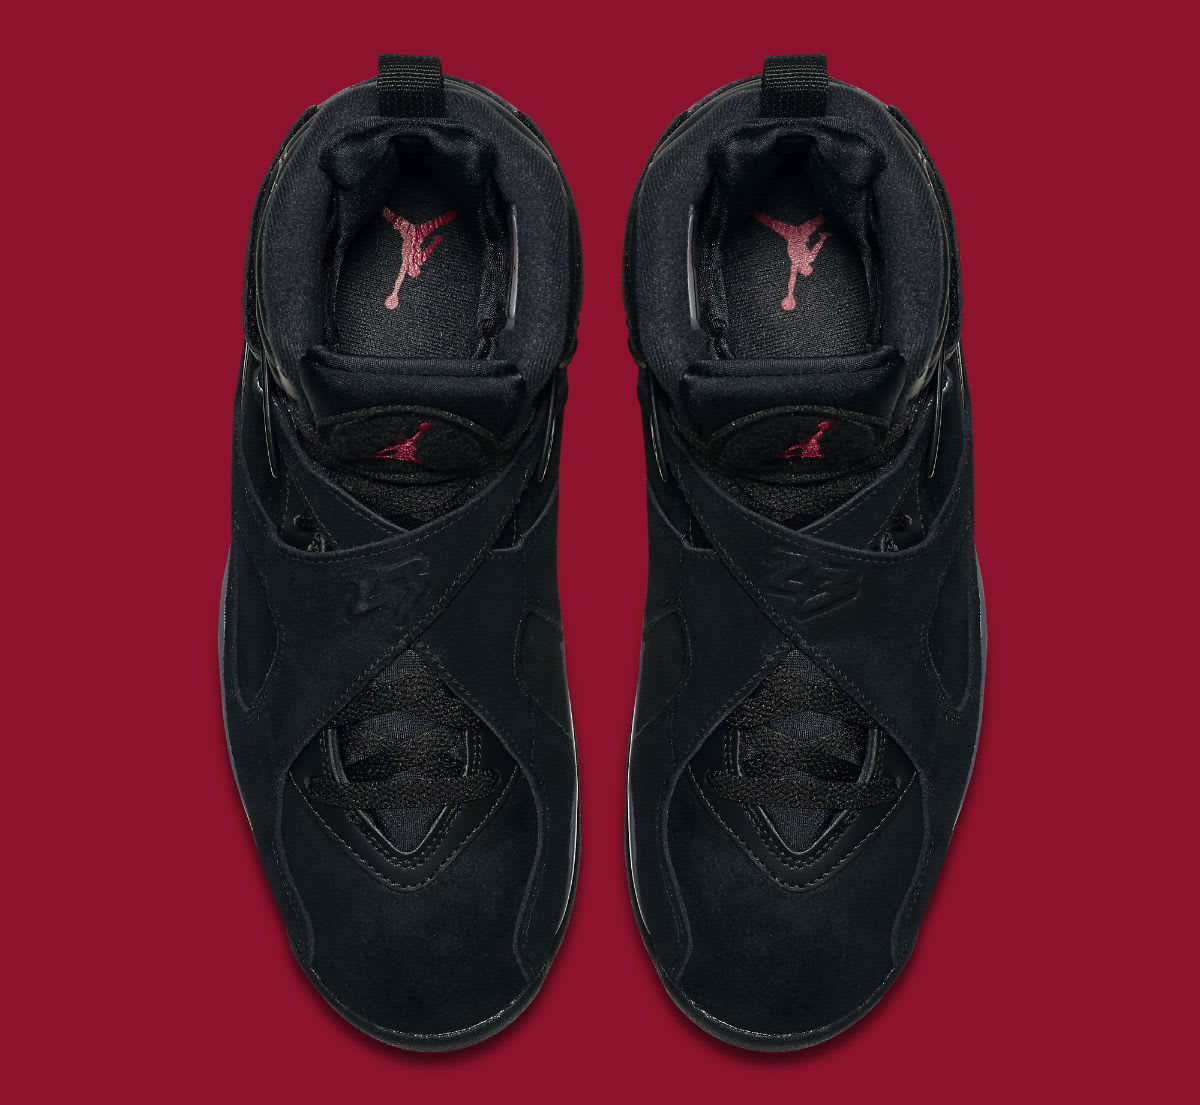 48bee7117c022e ... reduced air jordan 8 bred black gym red wolf grey release date top  305381 022 7264d